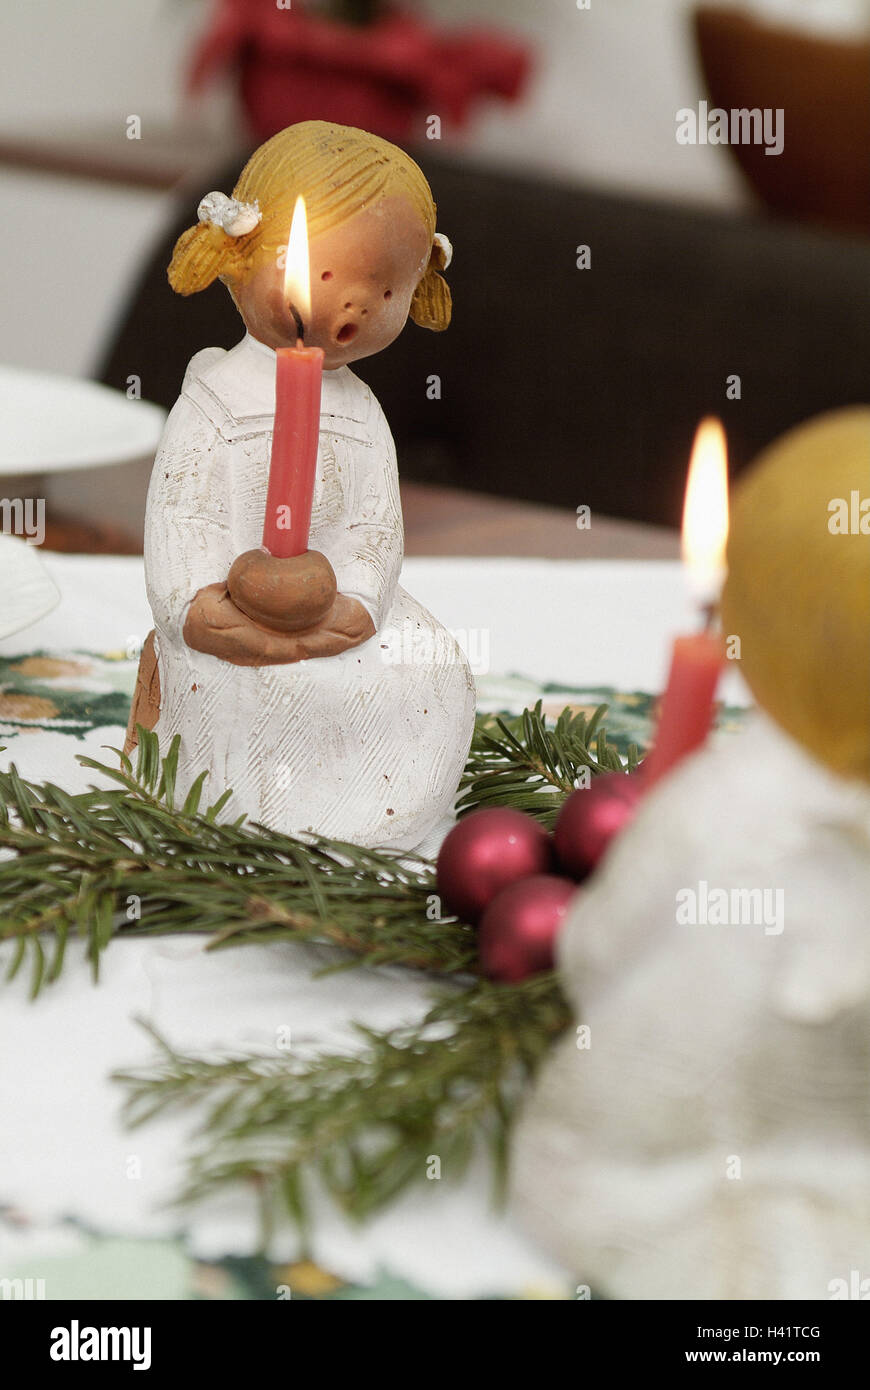 Table, Christmas decoration, angel's figures, detail, coffee table, covered, table caps, angels, candle holders, - Stock Image